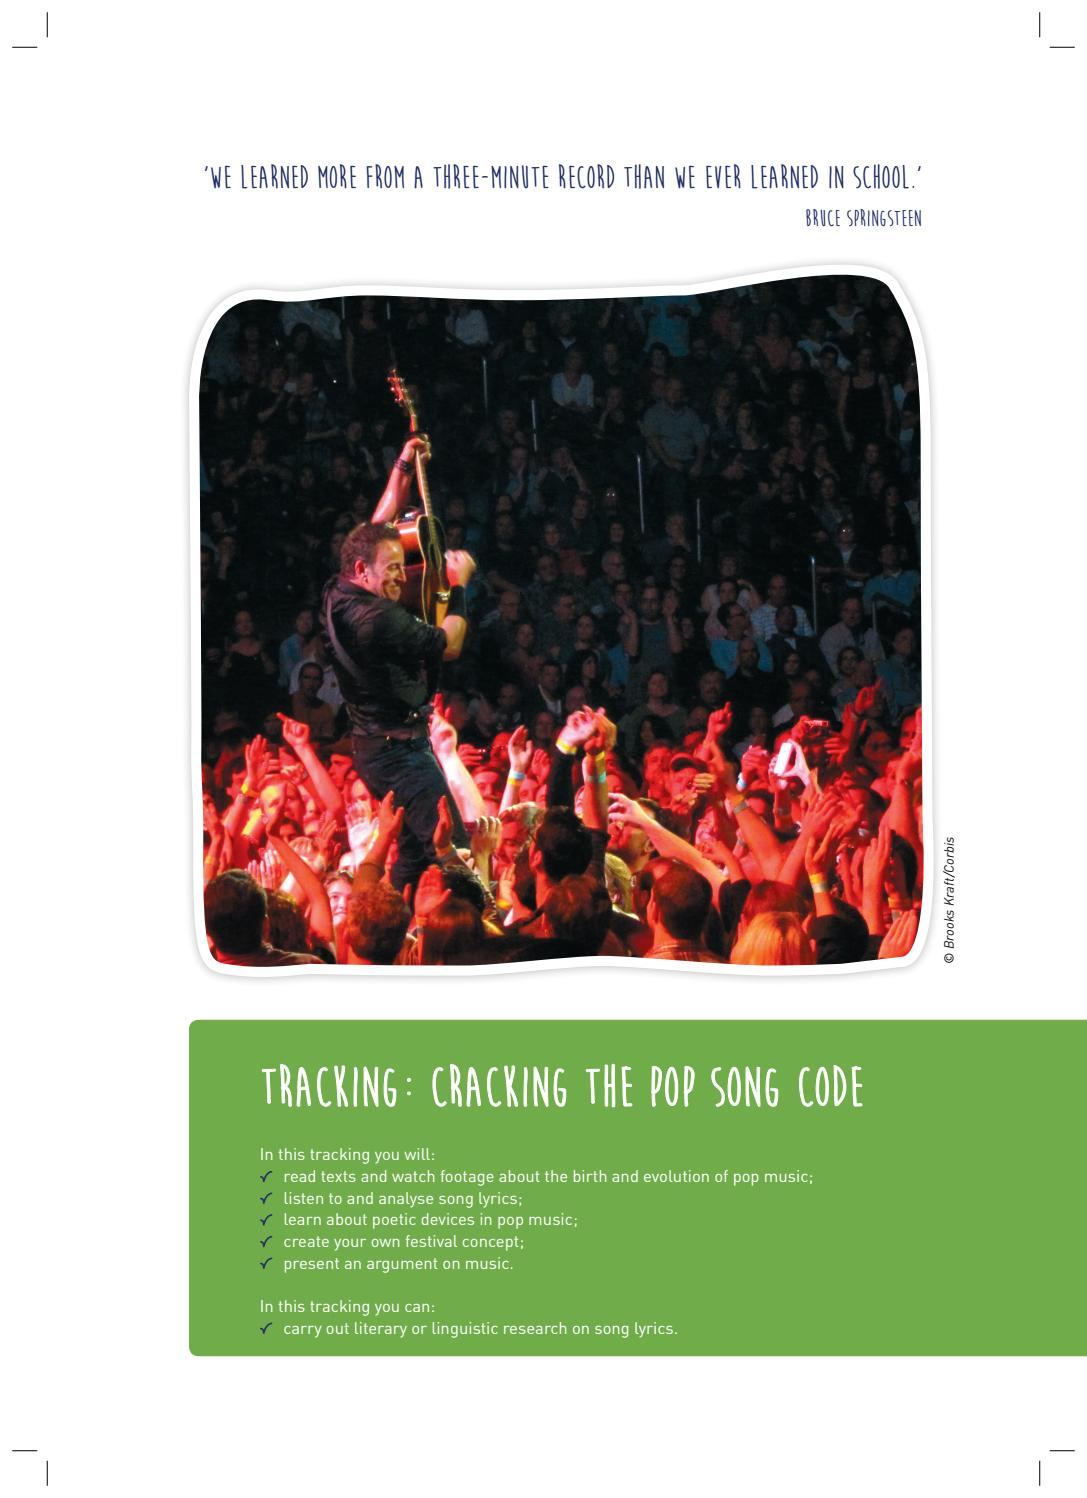 Tracking cracking the pop song code by VAN IN - issuu